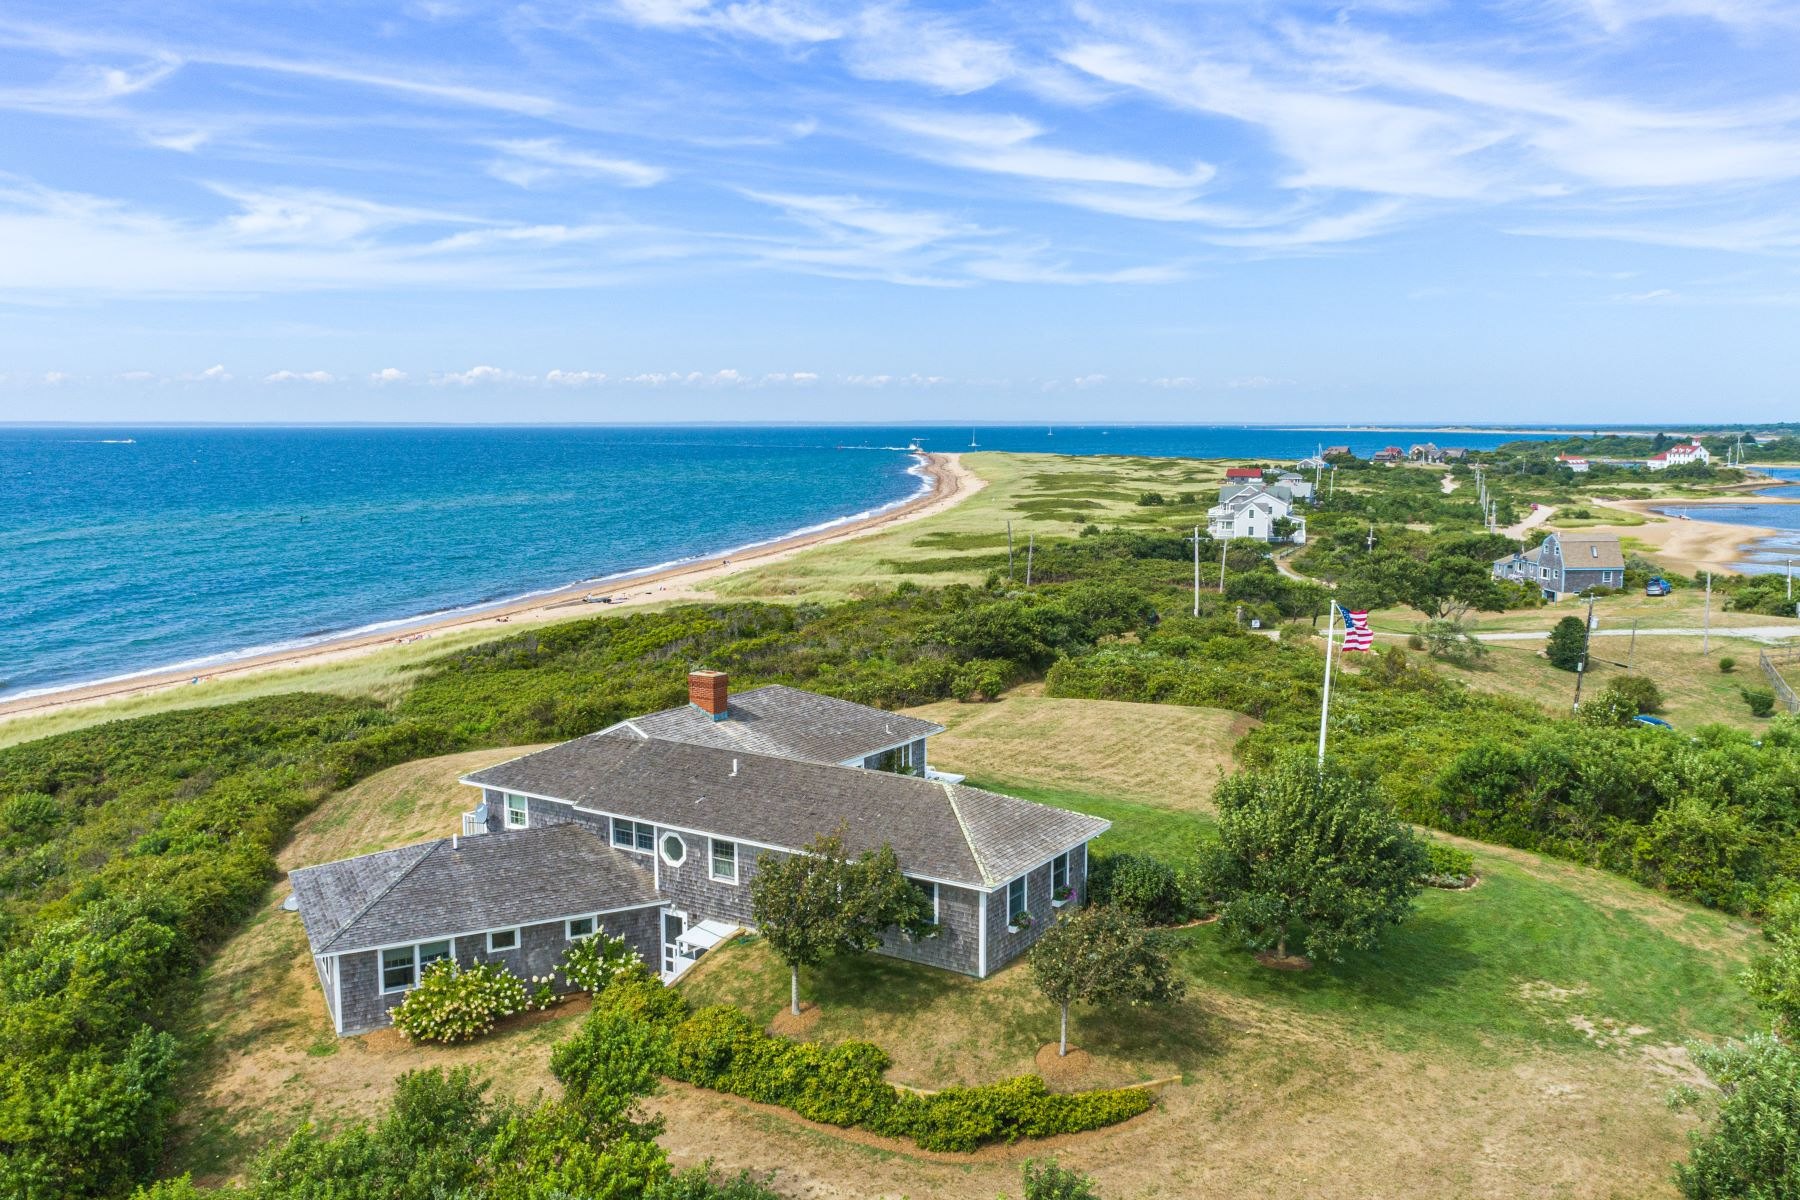 Single Family Homes for Sale at Coastal Retreat 925 Coast Guard Road Block Island, Rhode Island 02807 United States